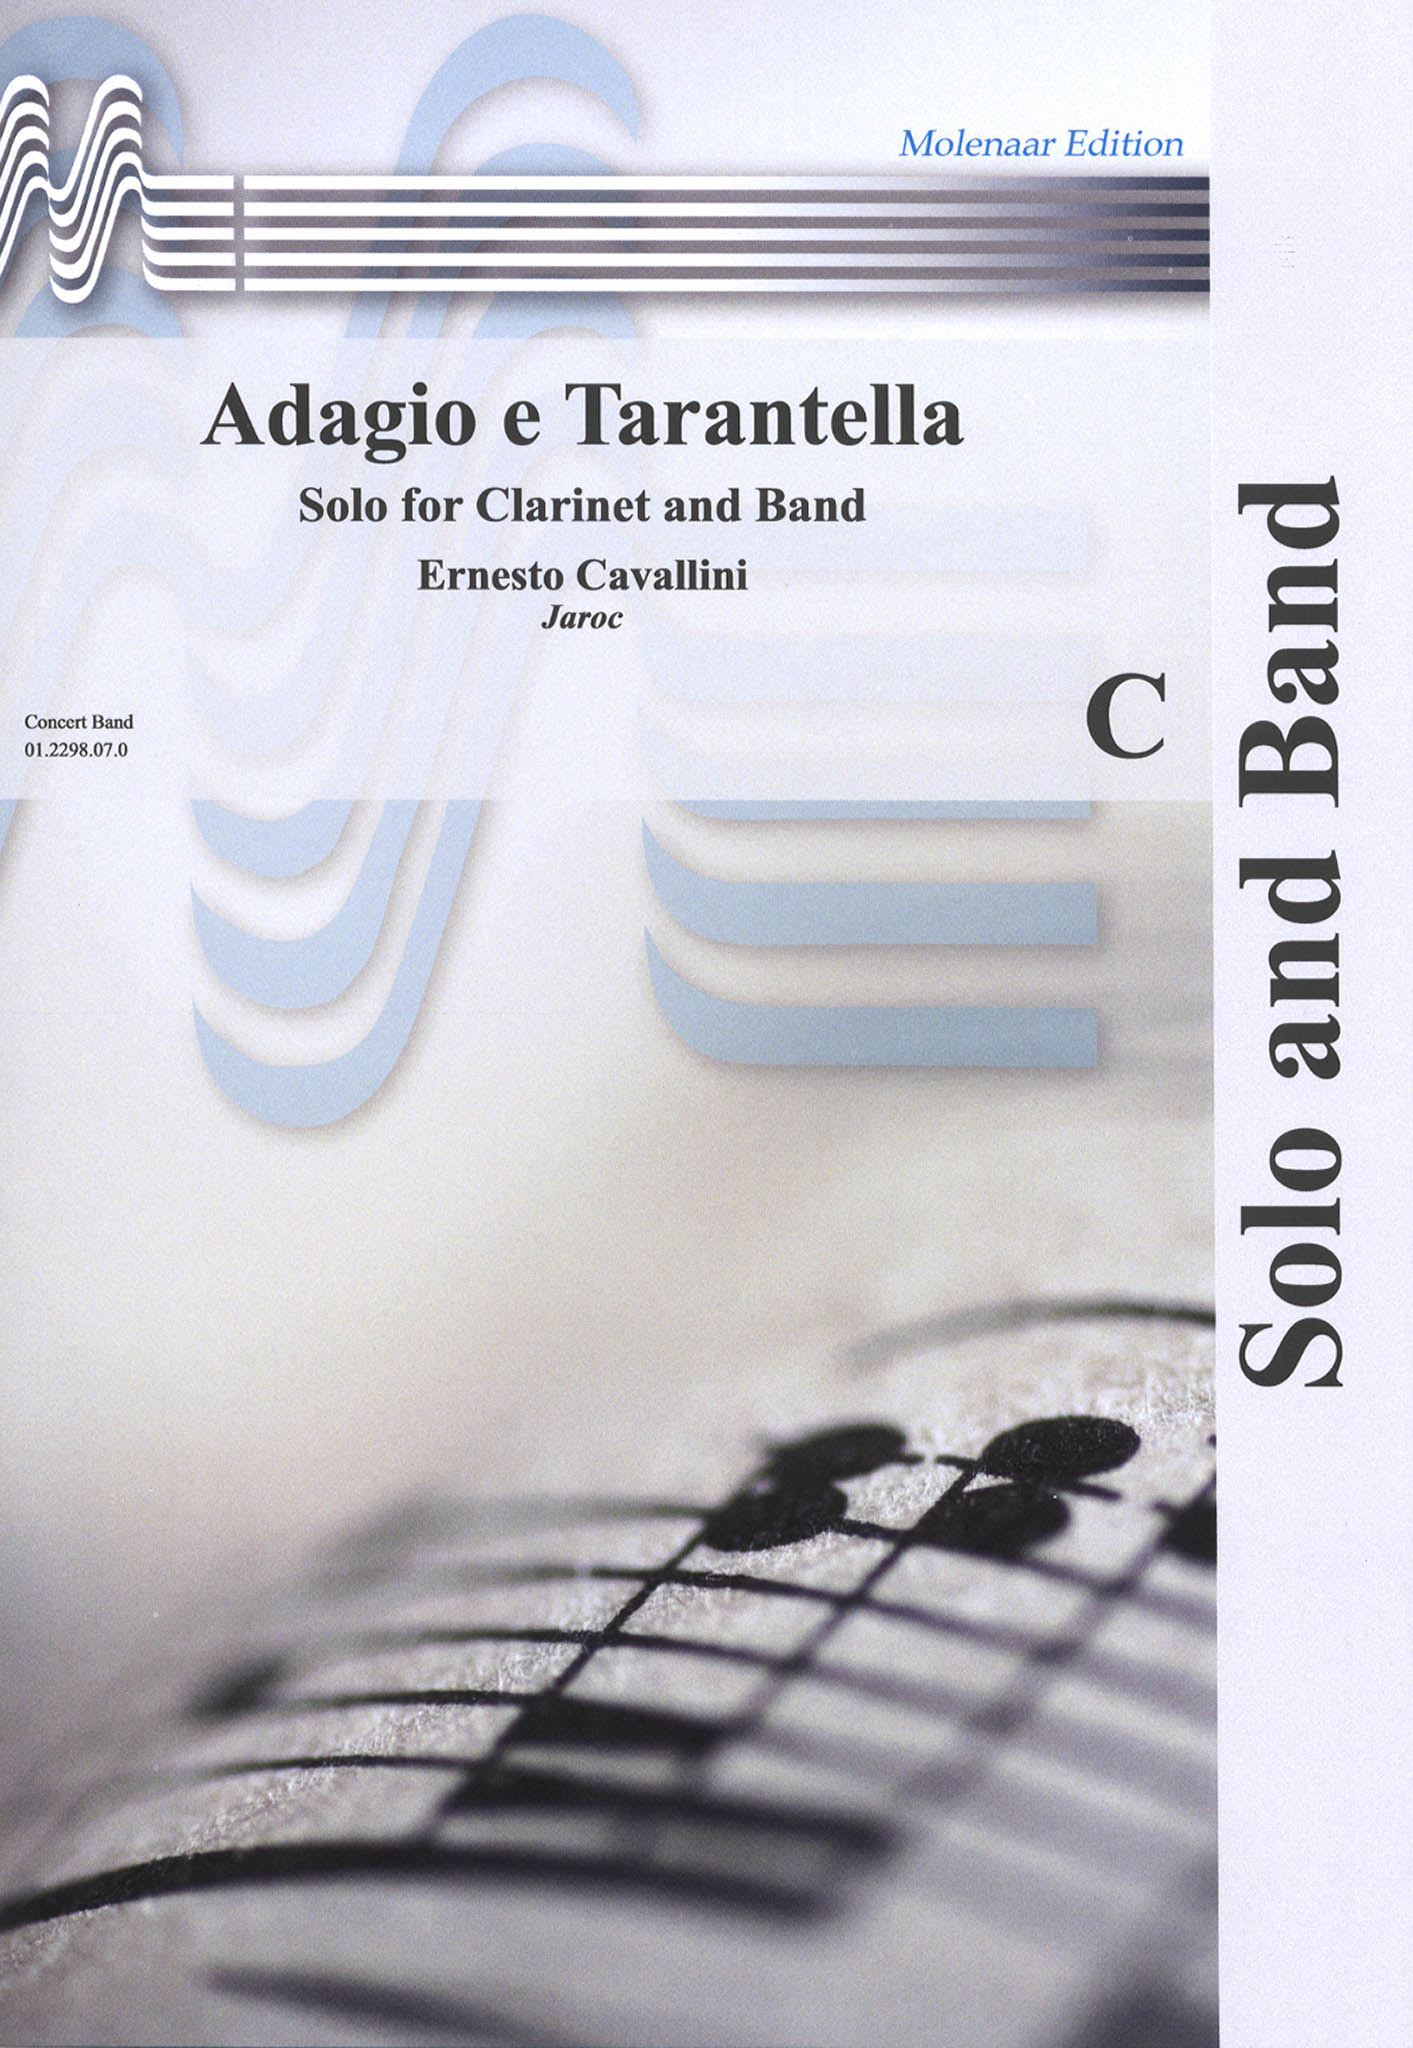 Adagio e Tarantella wind ensemble Cover